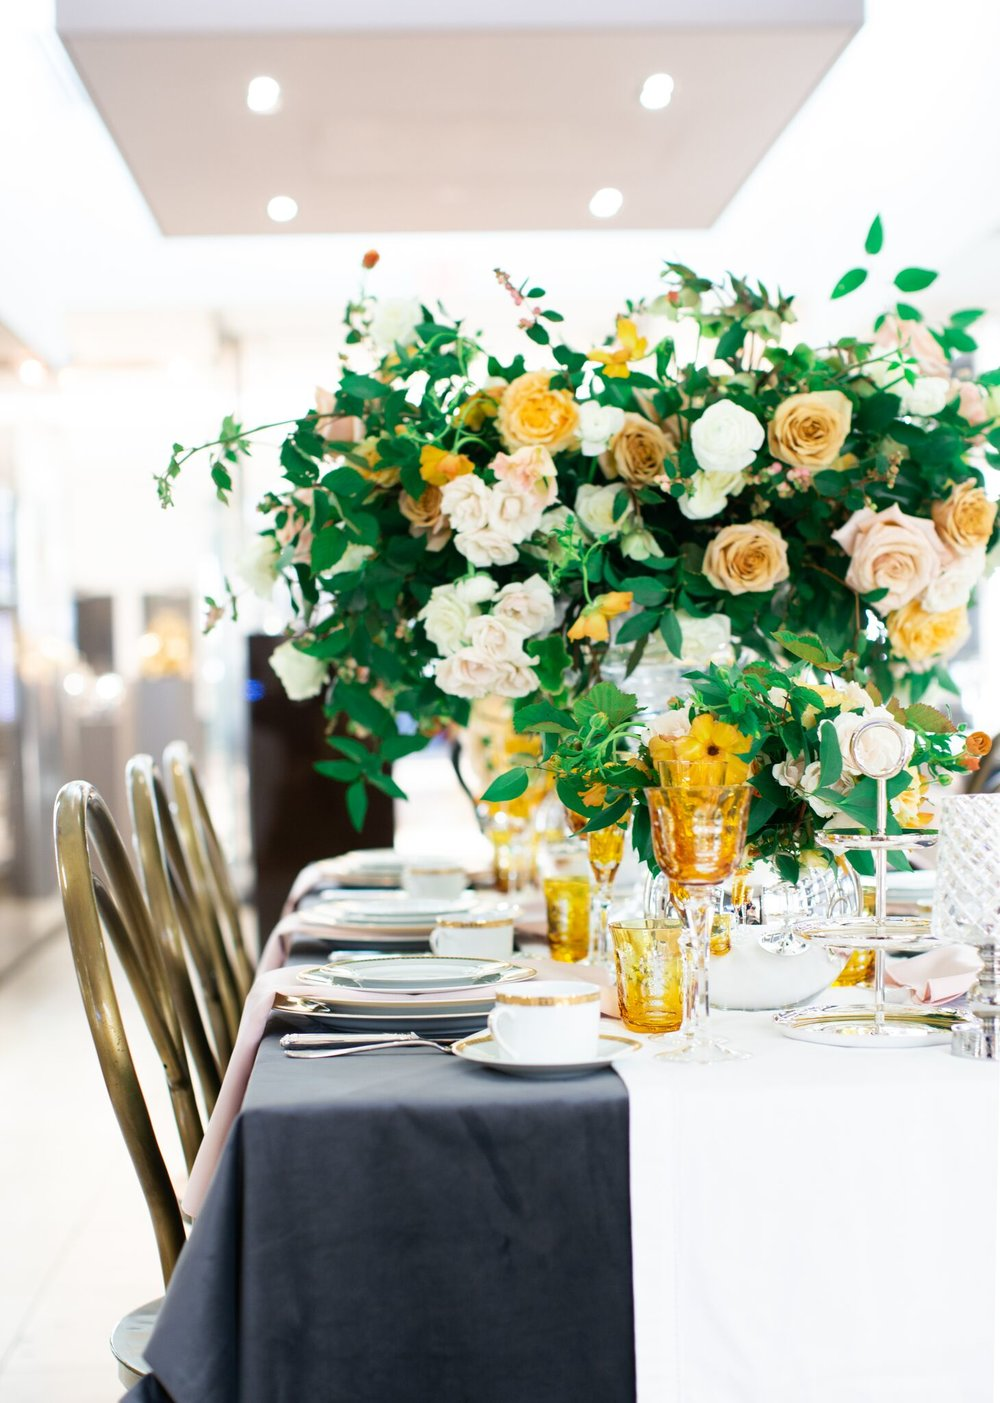 Christofle 2019 designed by Marie Flanigan Interior. In collaboration with Maxit Flower Design